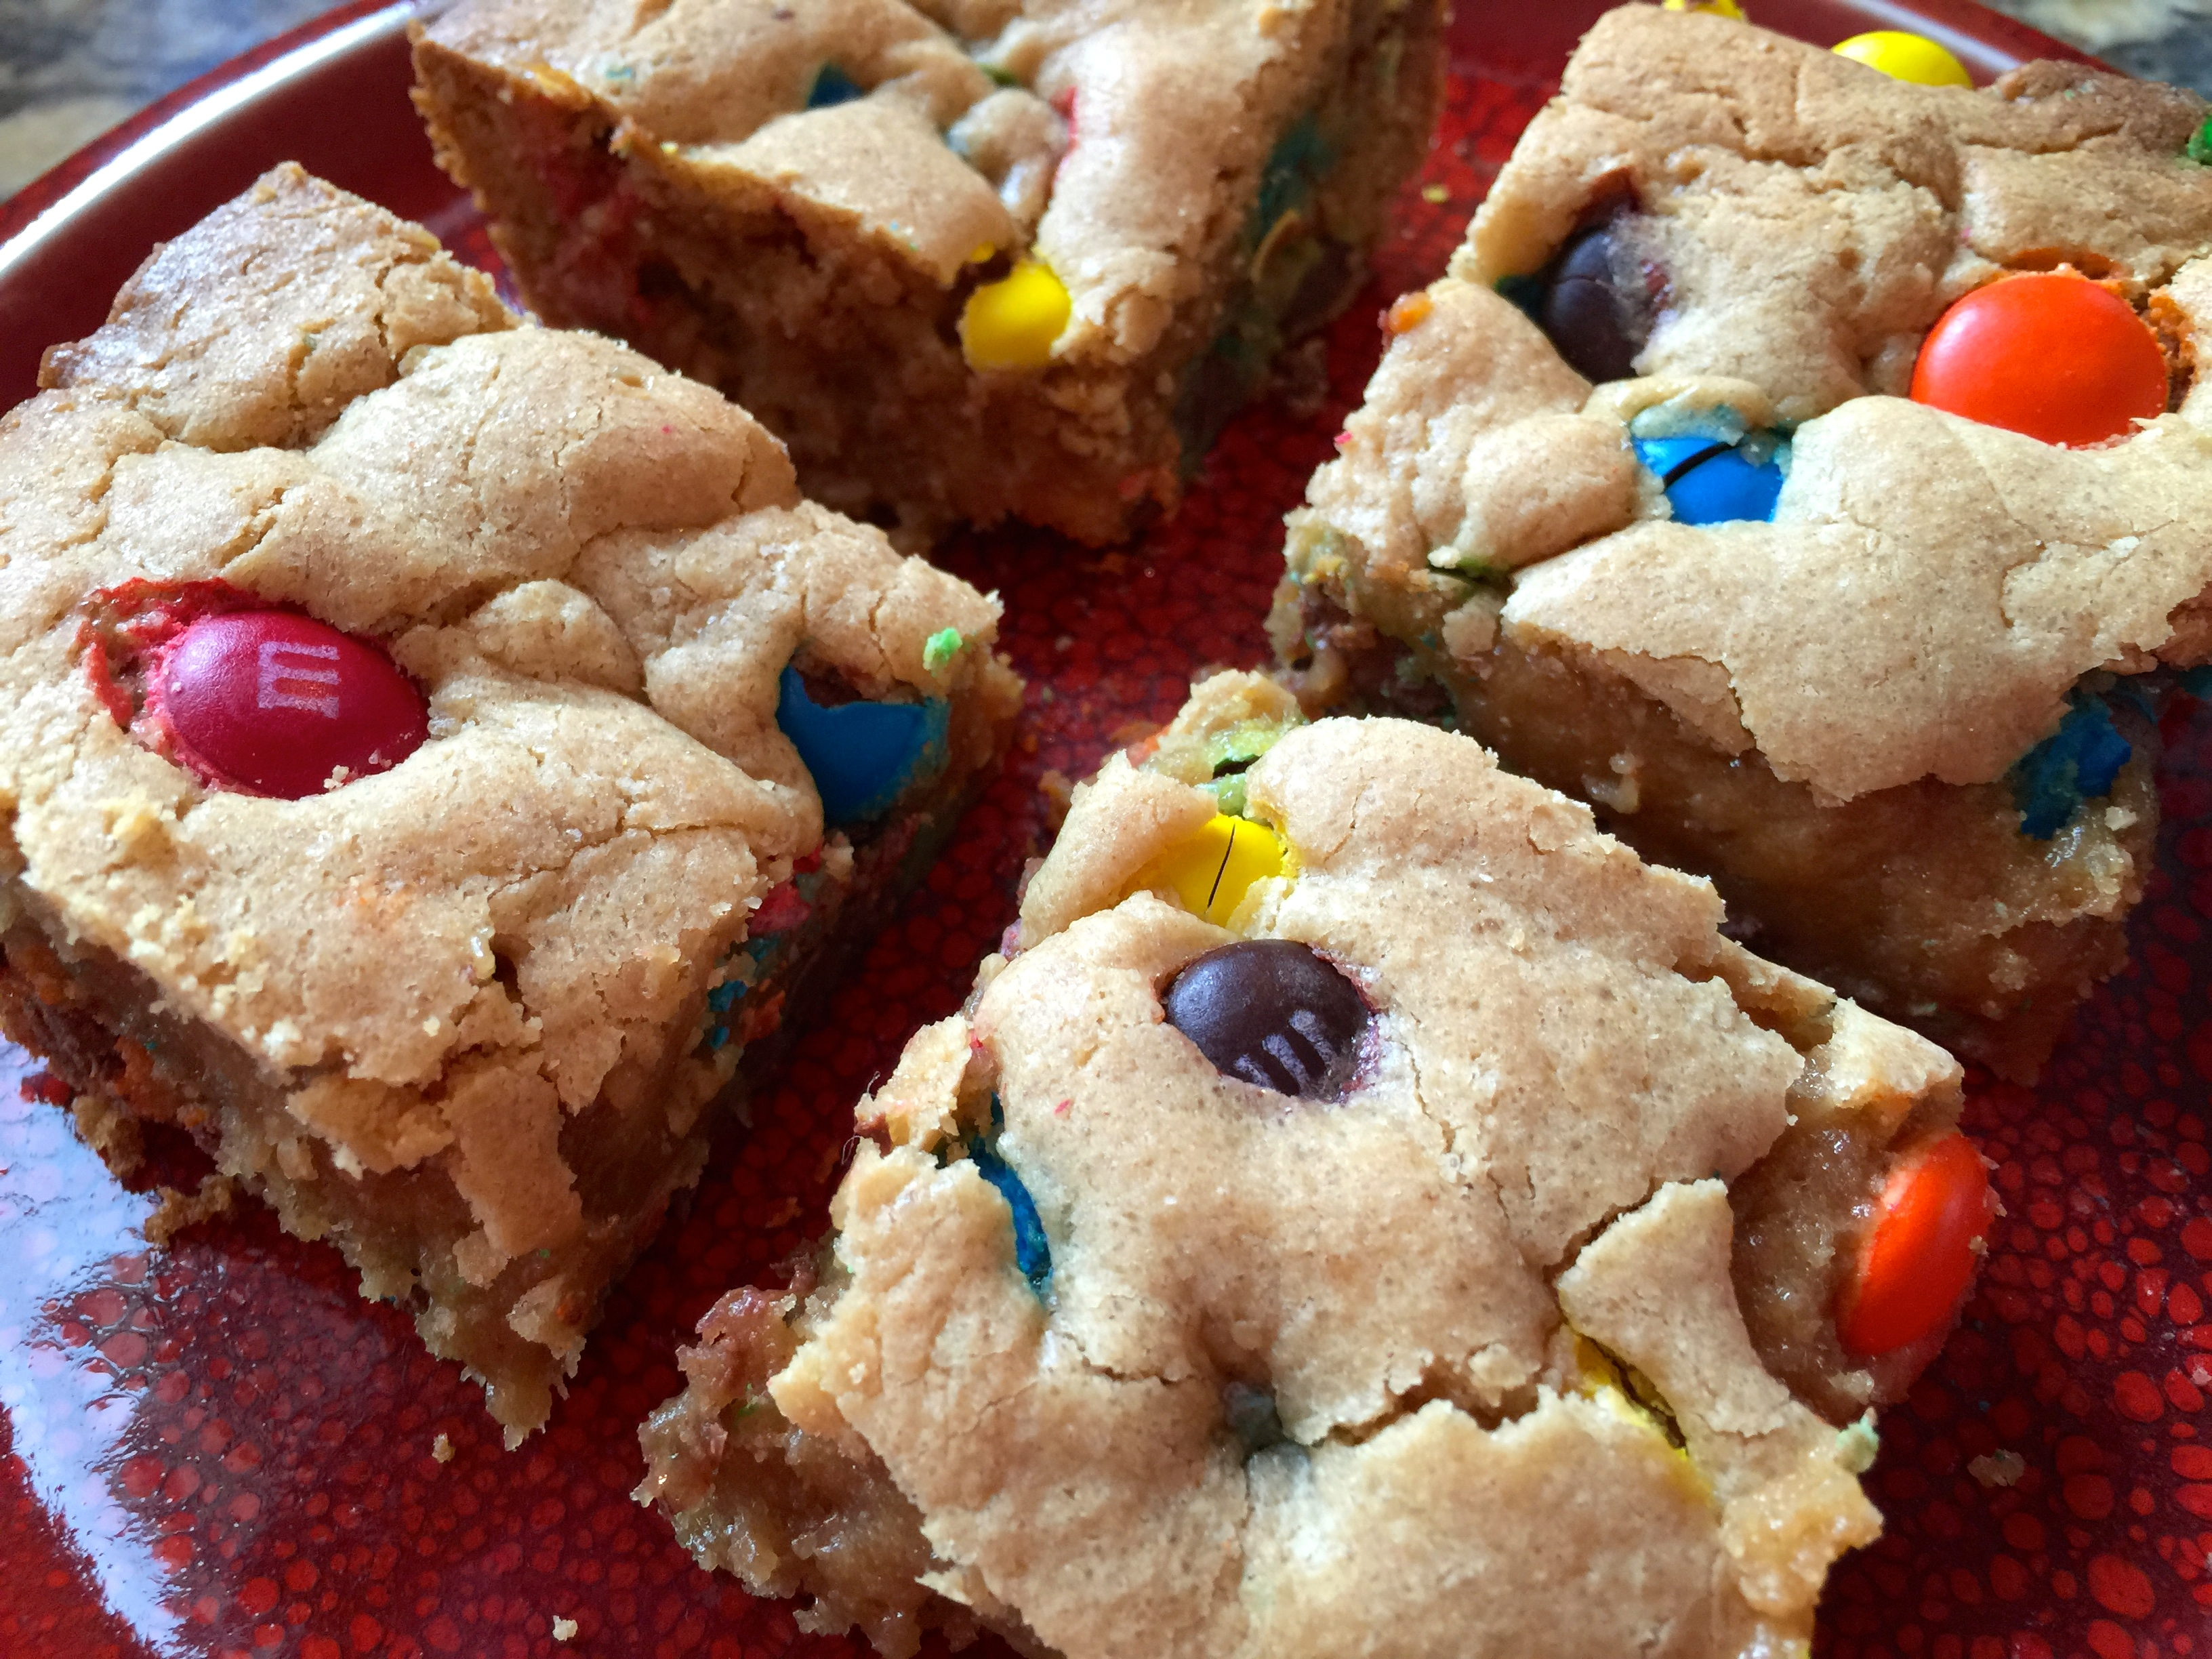 Check Out This Super Simple and Yummy Dessert: 5 Ingredient M&M Peanut Butter Bars